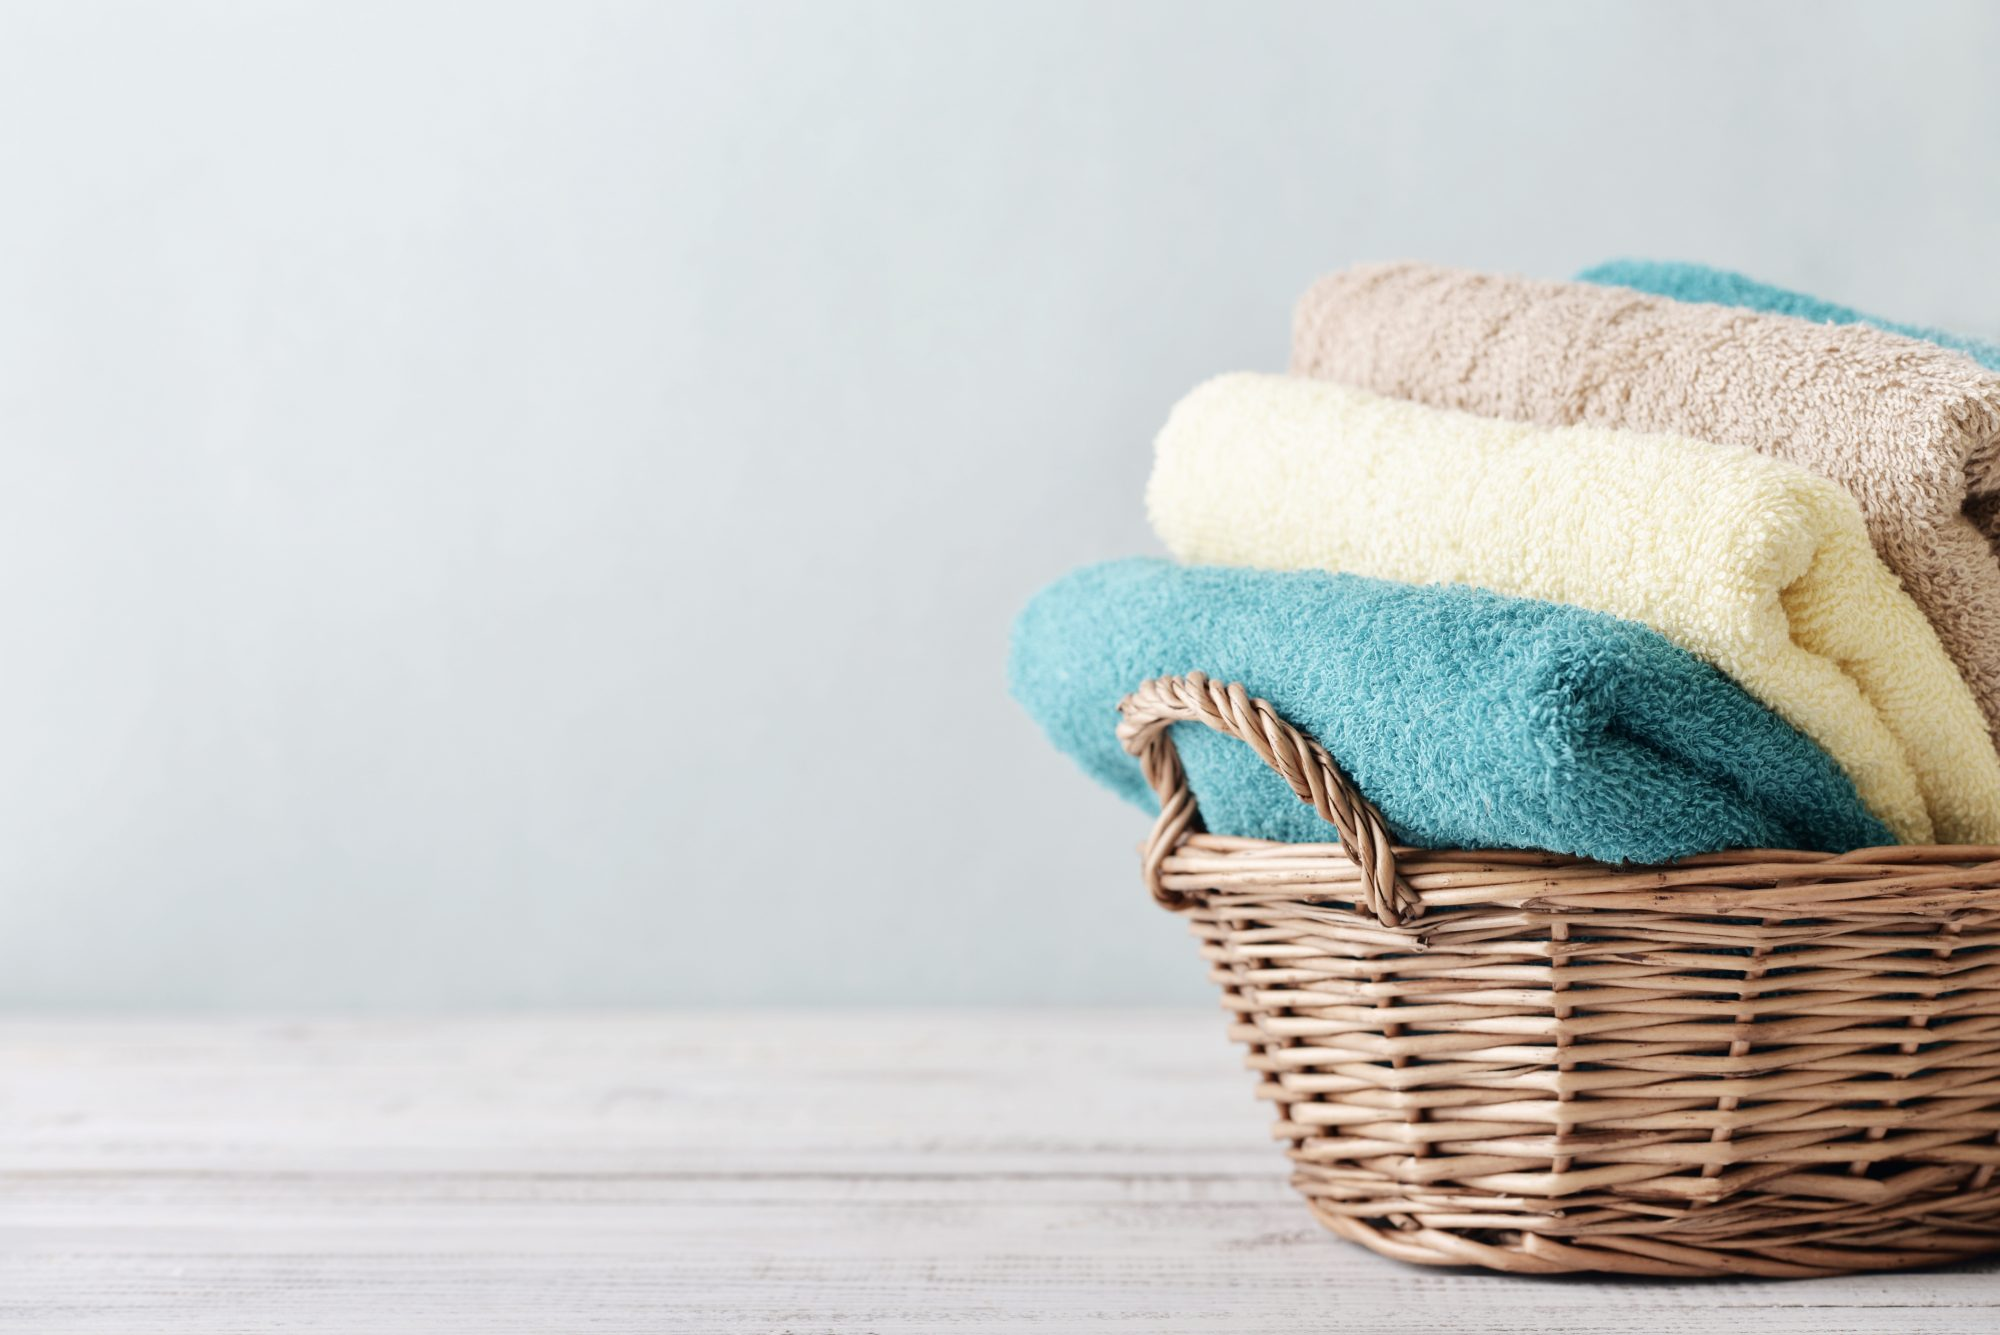 Folded Towels in Laundry Basket